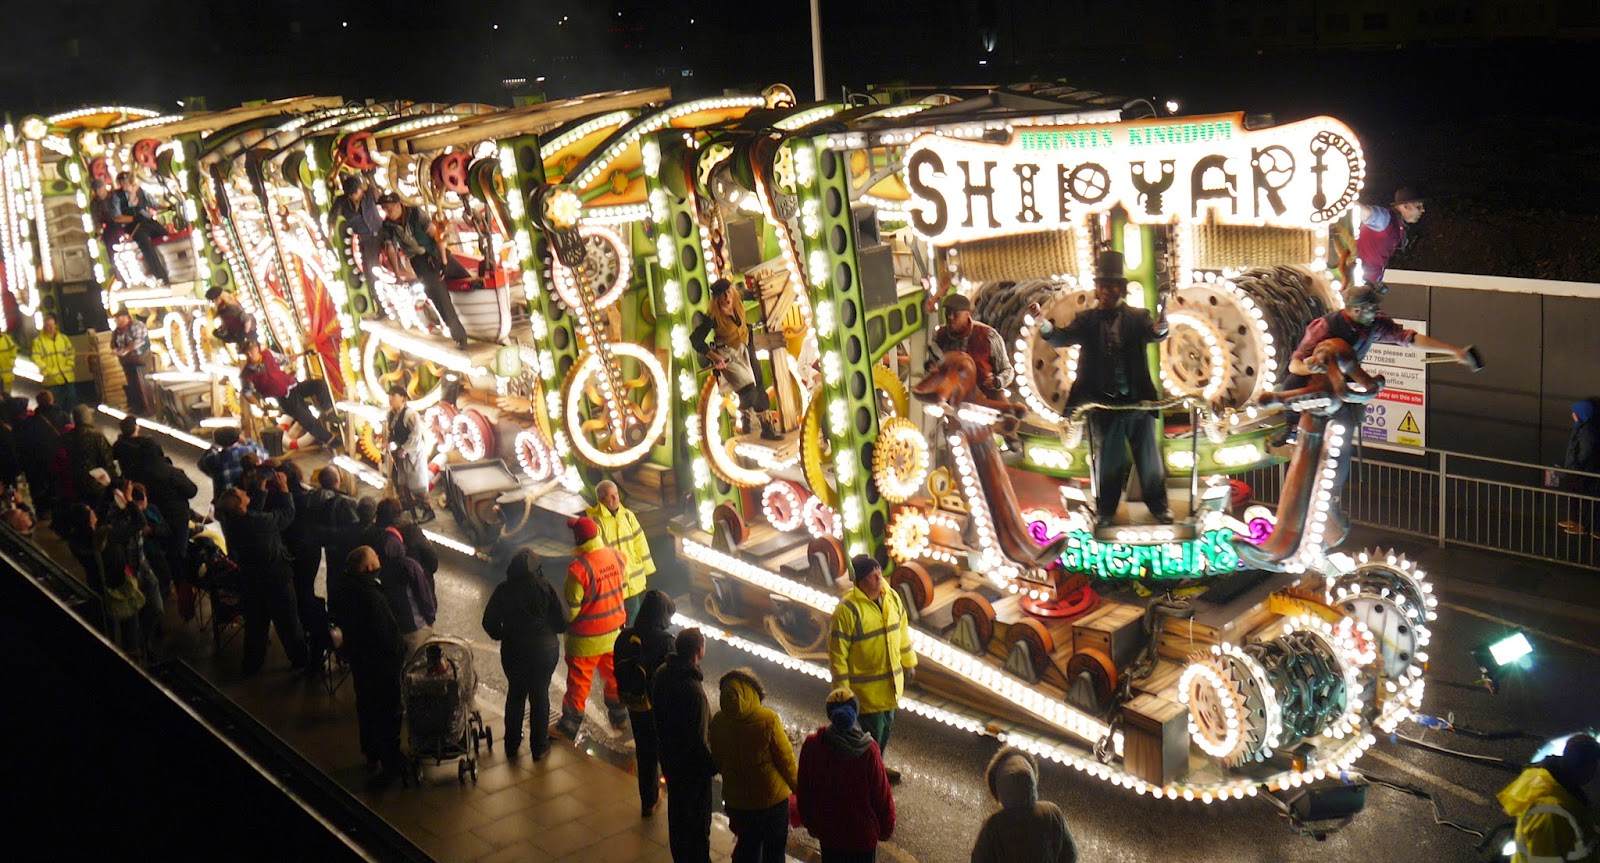 Somerset Carnival Season 2014 - Gremlins Carnival Club with 'Brunel's Kingdom - The Shipyard'